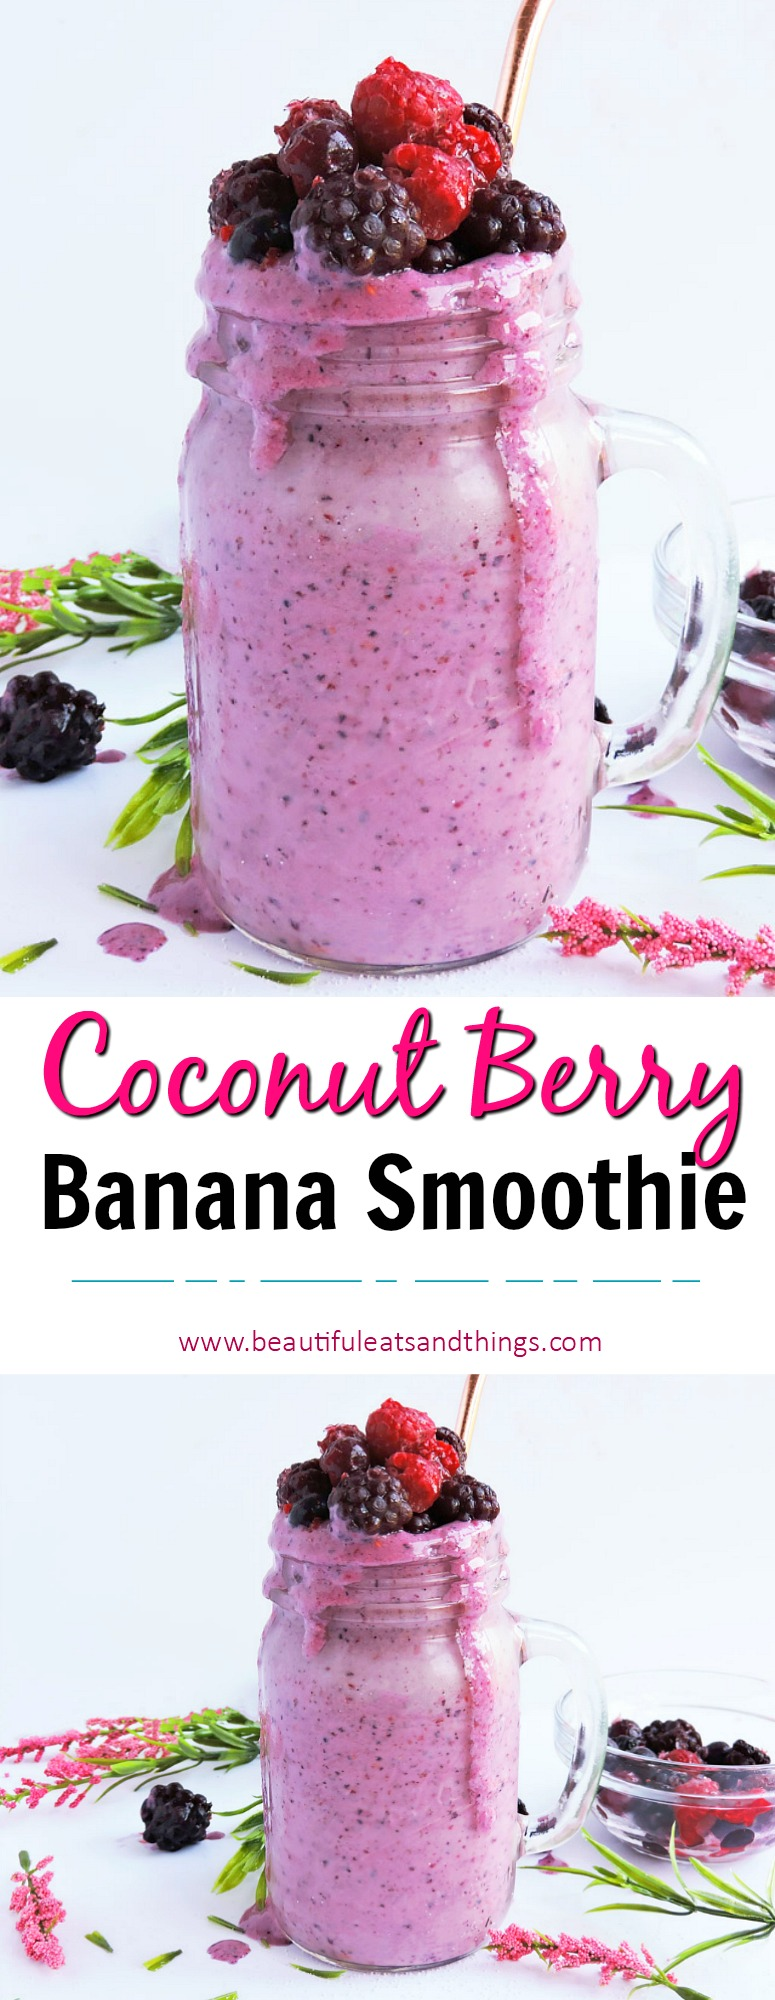 my recipe for relief-coconut berry banana smoothie